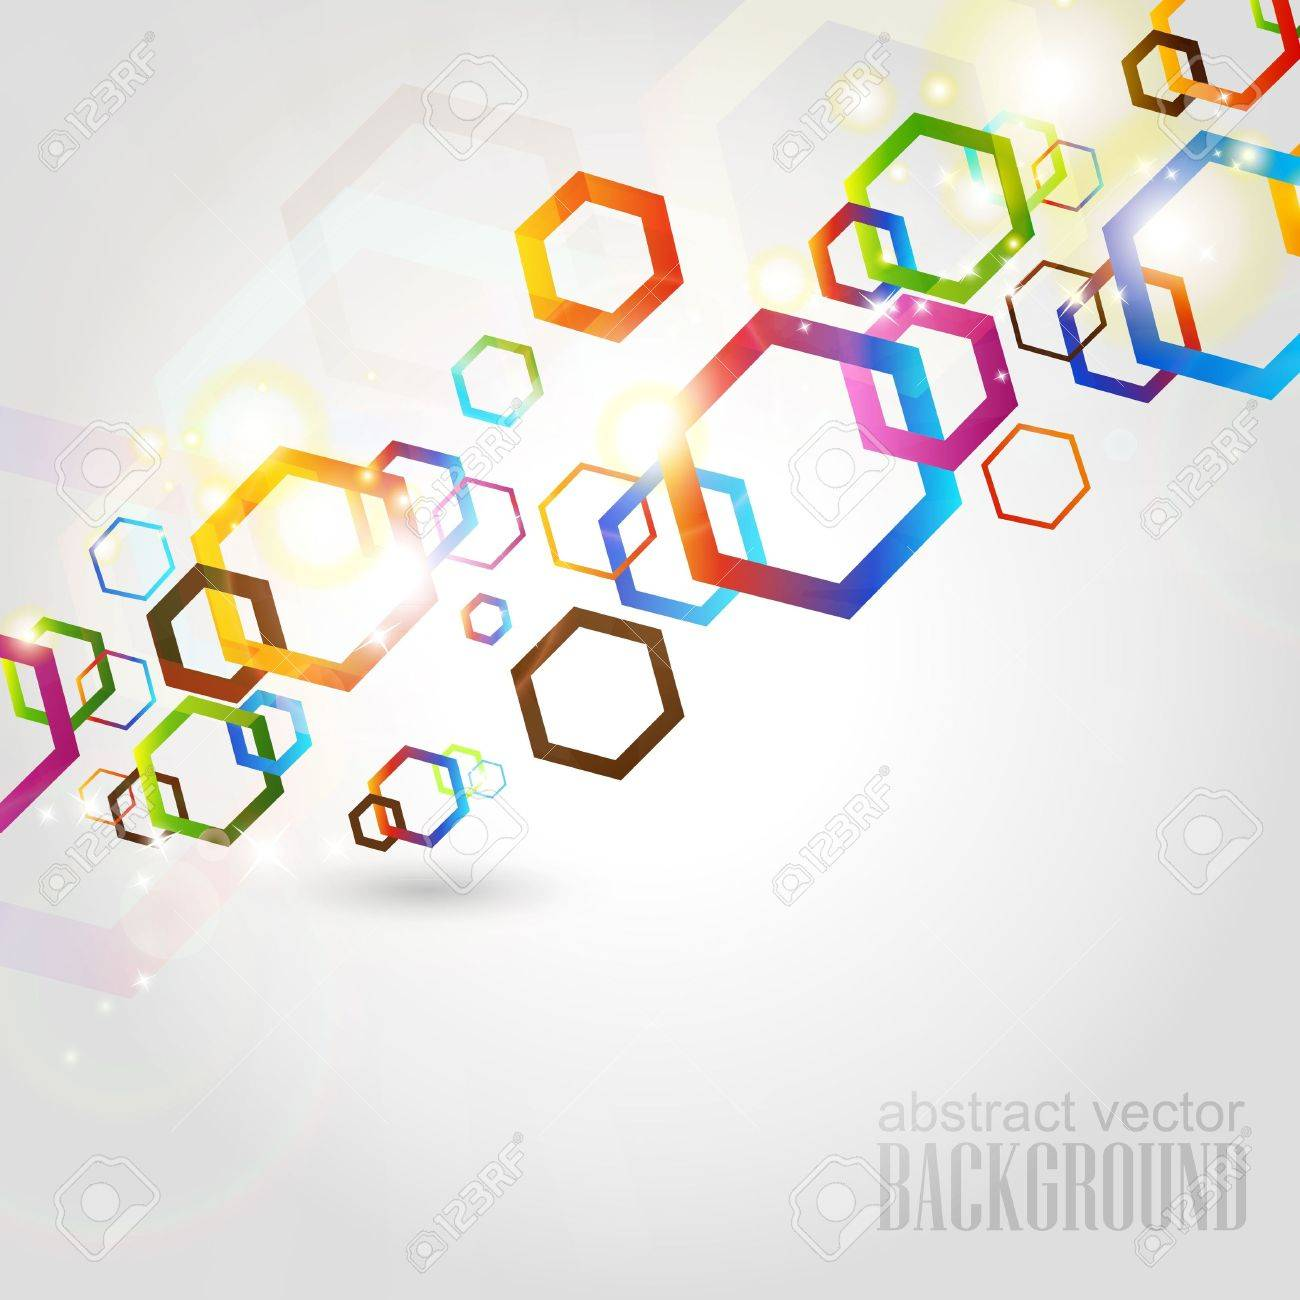 Abstract geometric Stock Vector - 17846809